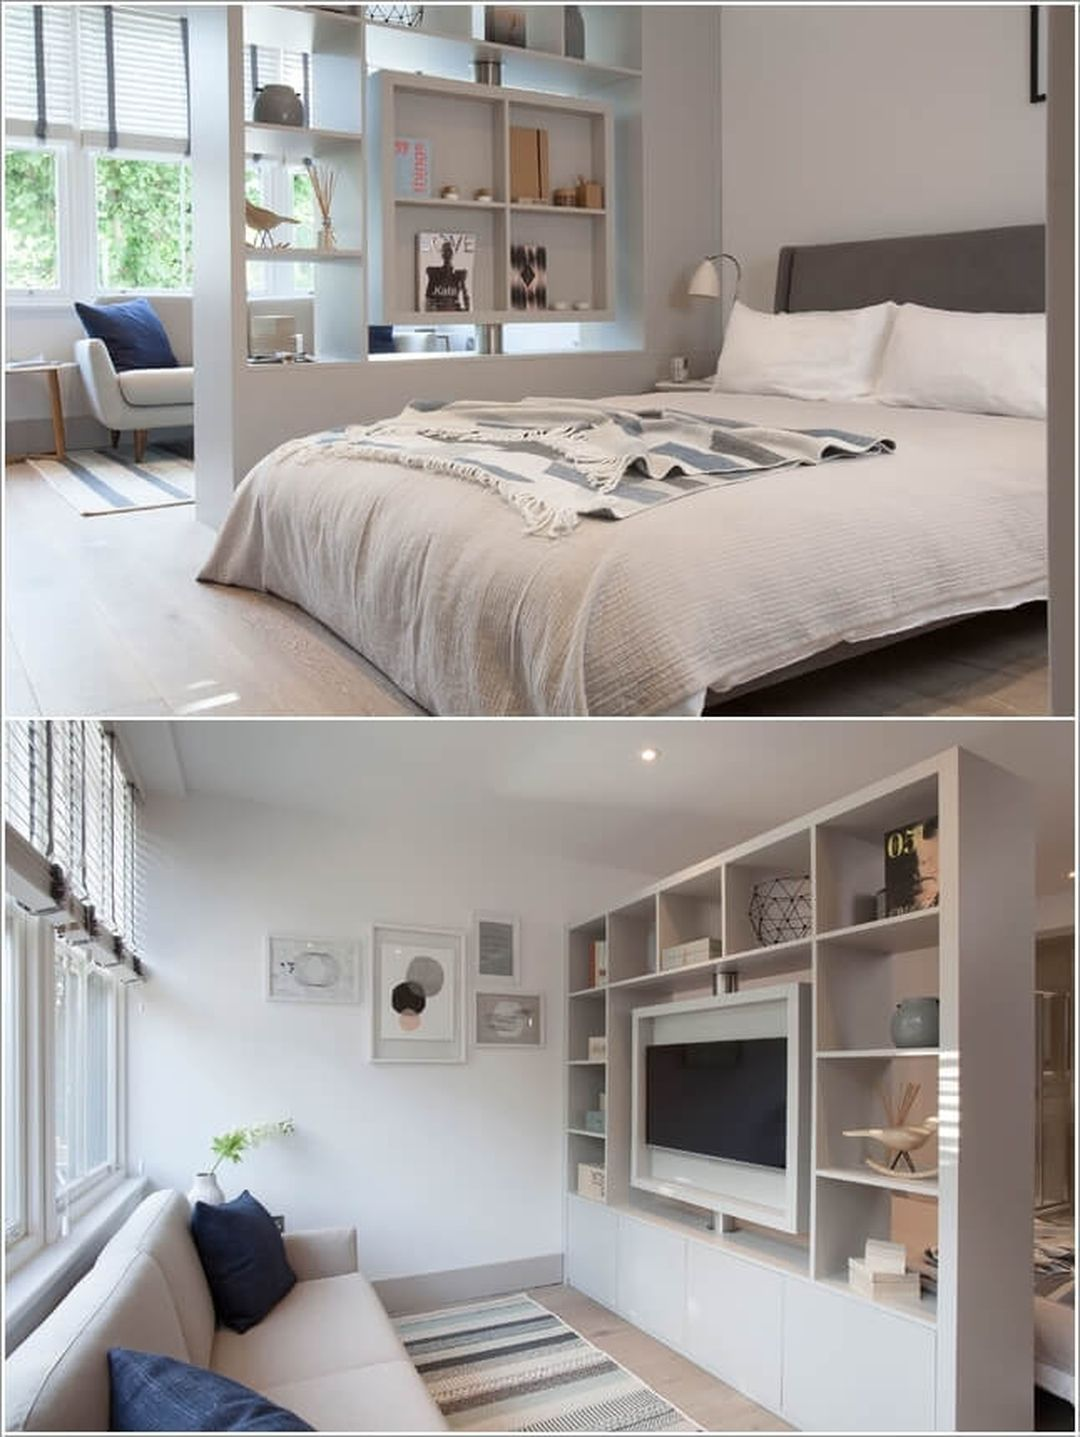 DIY Small Apartment Decorating Ideas On A Budget (40 | Pinterest ...